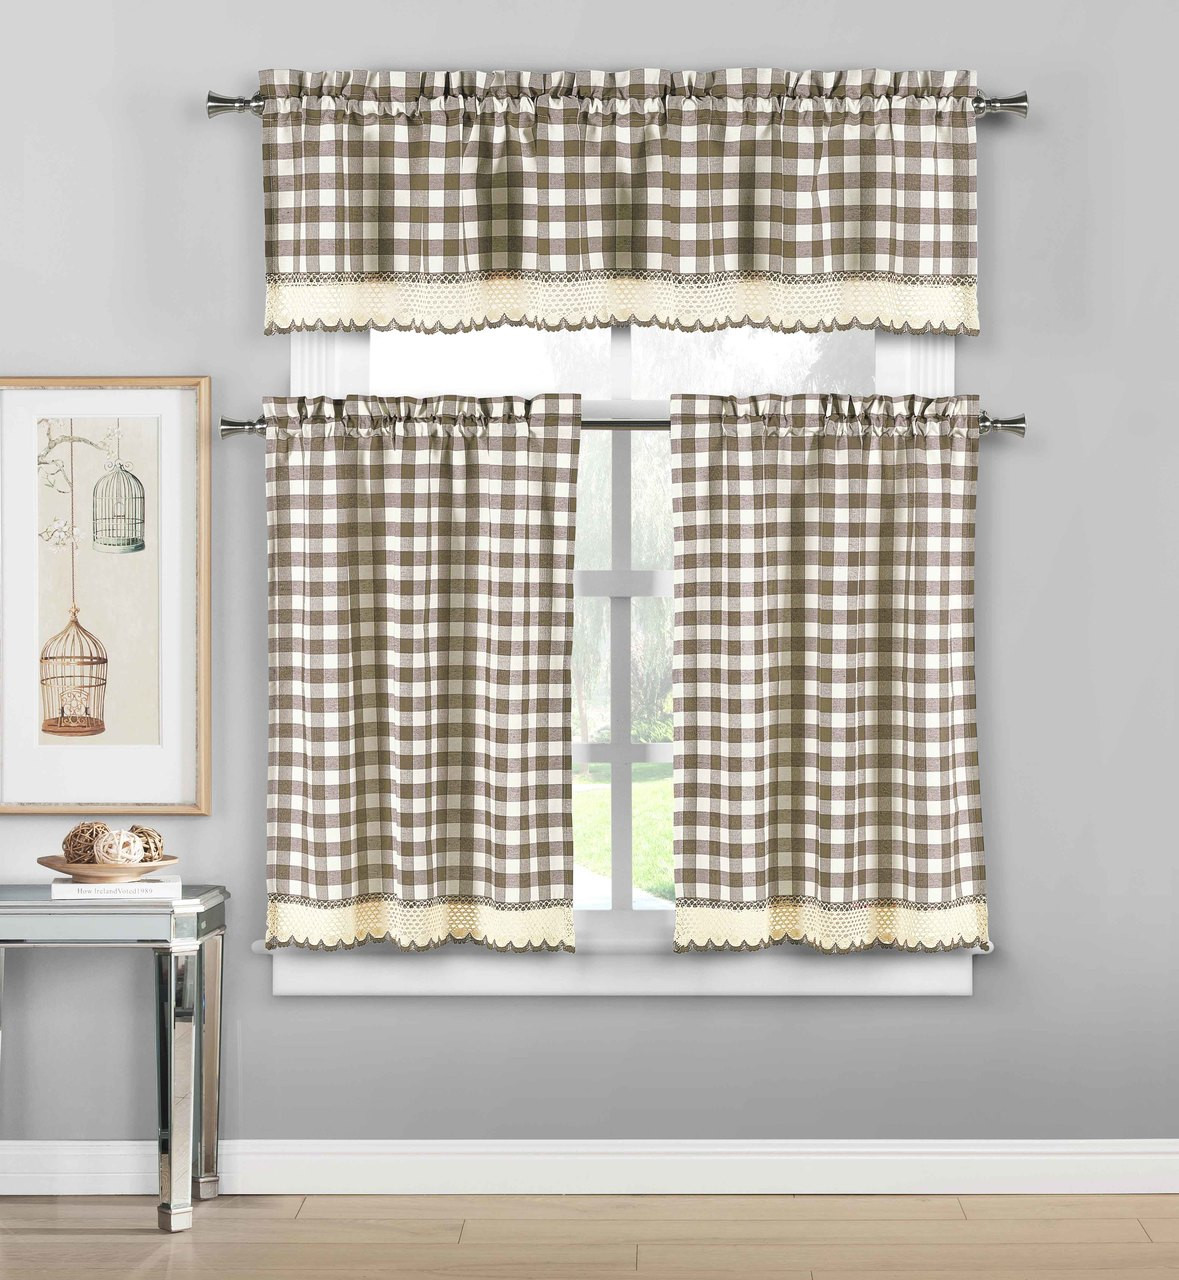 Plaid Taupe 3 Piece Plaid Checkered Gingham Kitchen Curtain Set 35 Cotton 1 Valance 2 Tier Panels With Crochet Accent Taupe